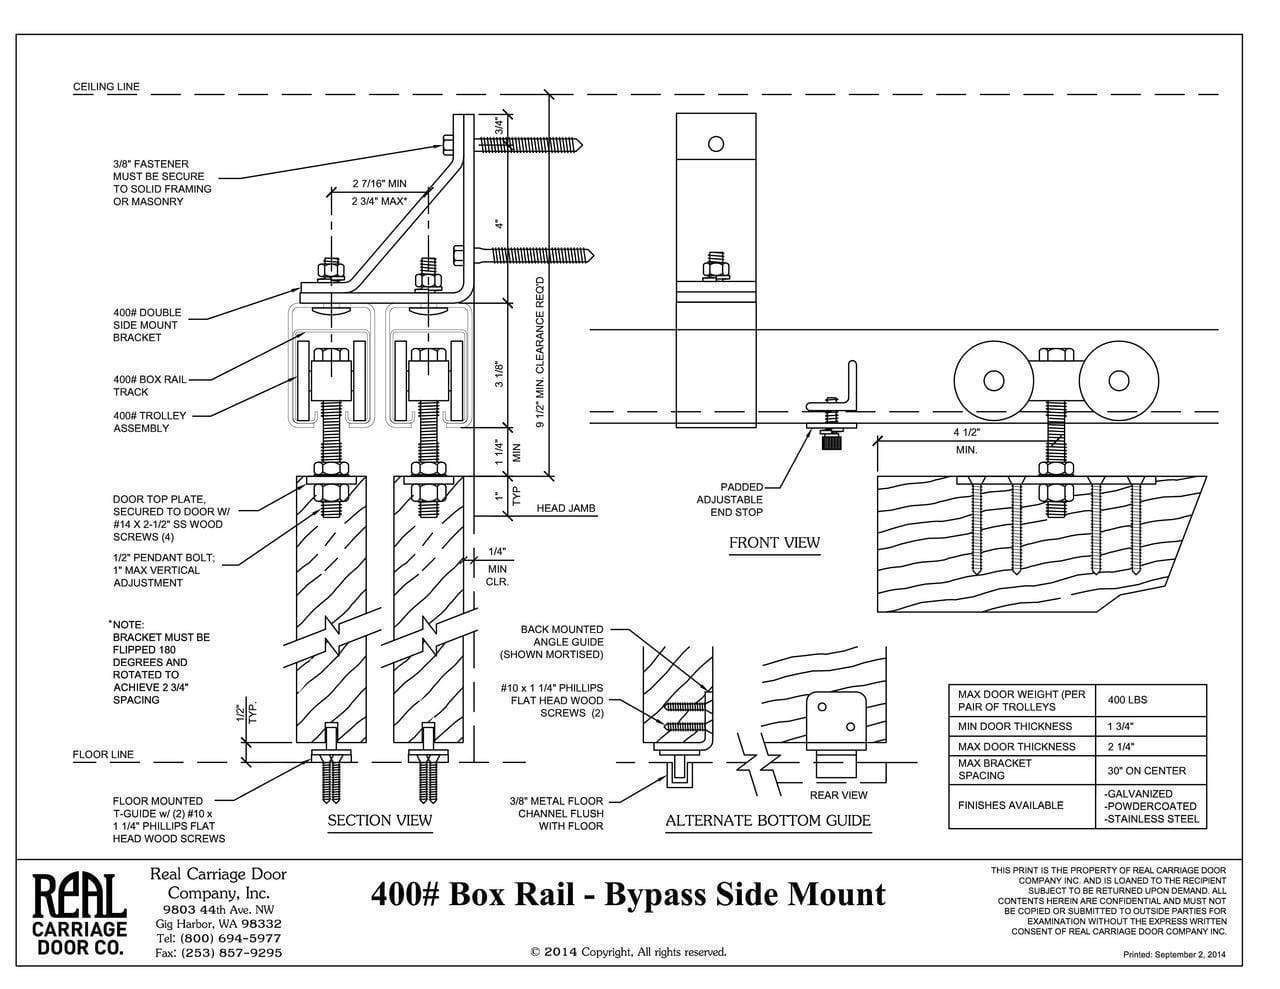 Box Rail Bypass Barn Door Hardware Kit Interior Exterior 400 Lb In 2020 Bypass Barn Door Hardware Bypass Barn Door Sliding Doors Exterior